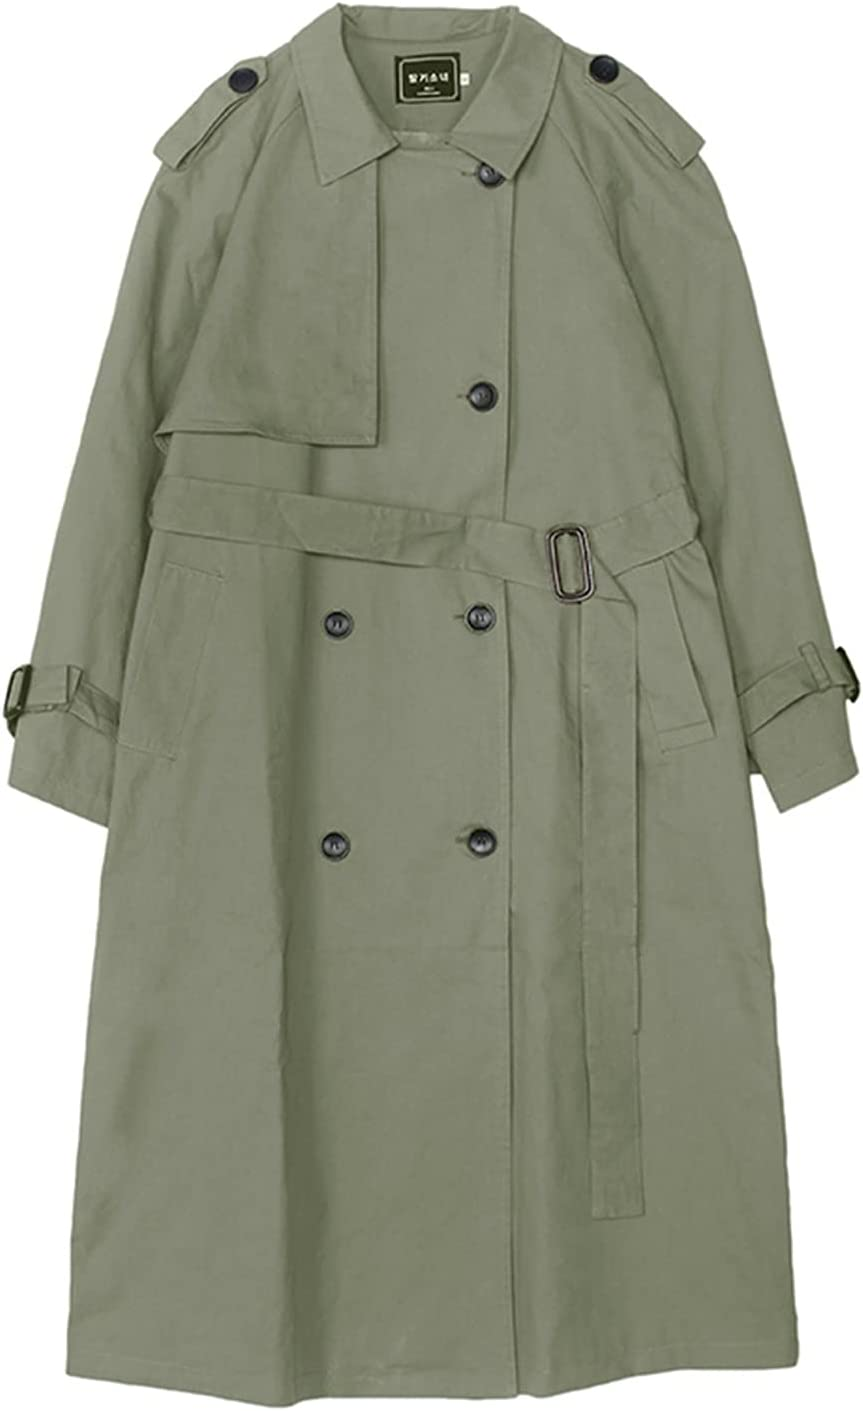 fzwt England Style Double-Breasted Long Women Trench Coat Belted with Flaps Spring Autumn Lady Windbreaker Duster Coat Female Clothes (Color : Green, Size : S)